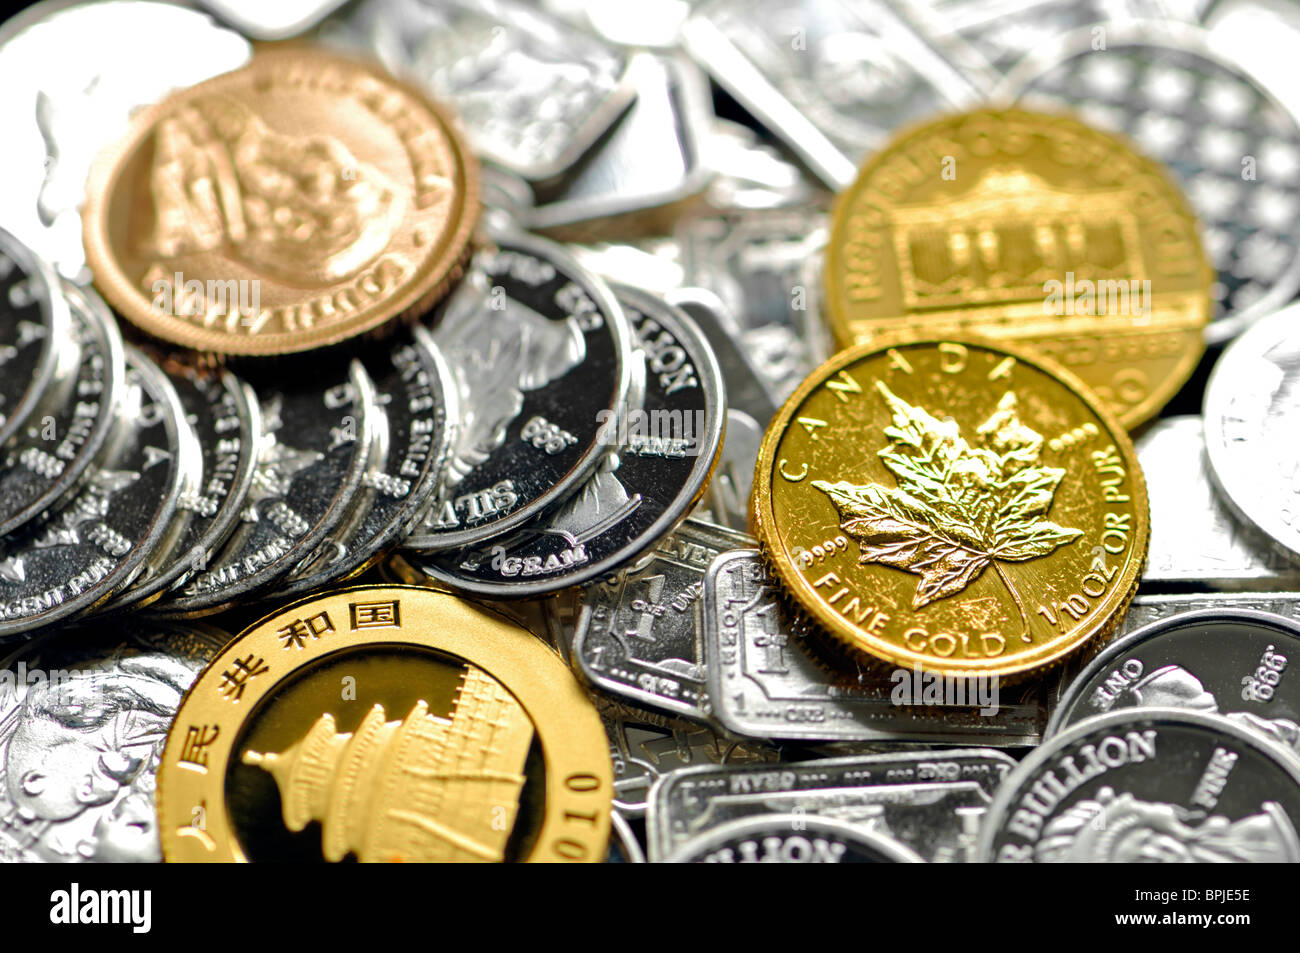 Gold and Silver bullion in small coins: 1g silver rounds and 10th ounce gold coins - Stock Image